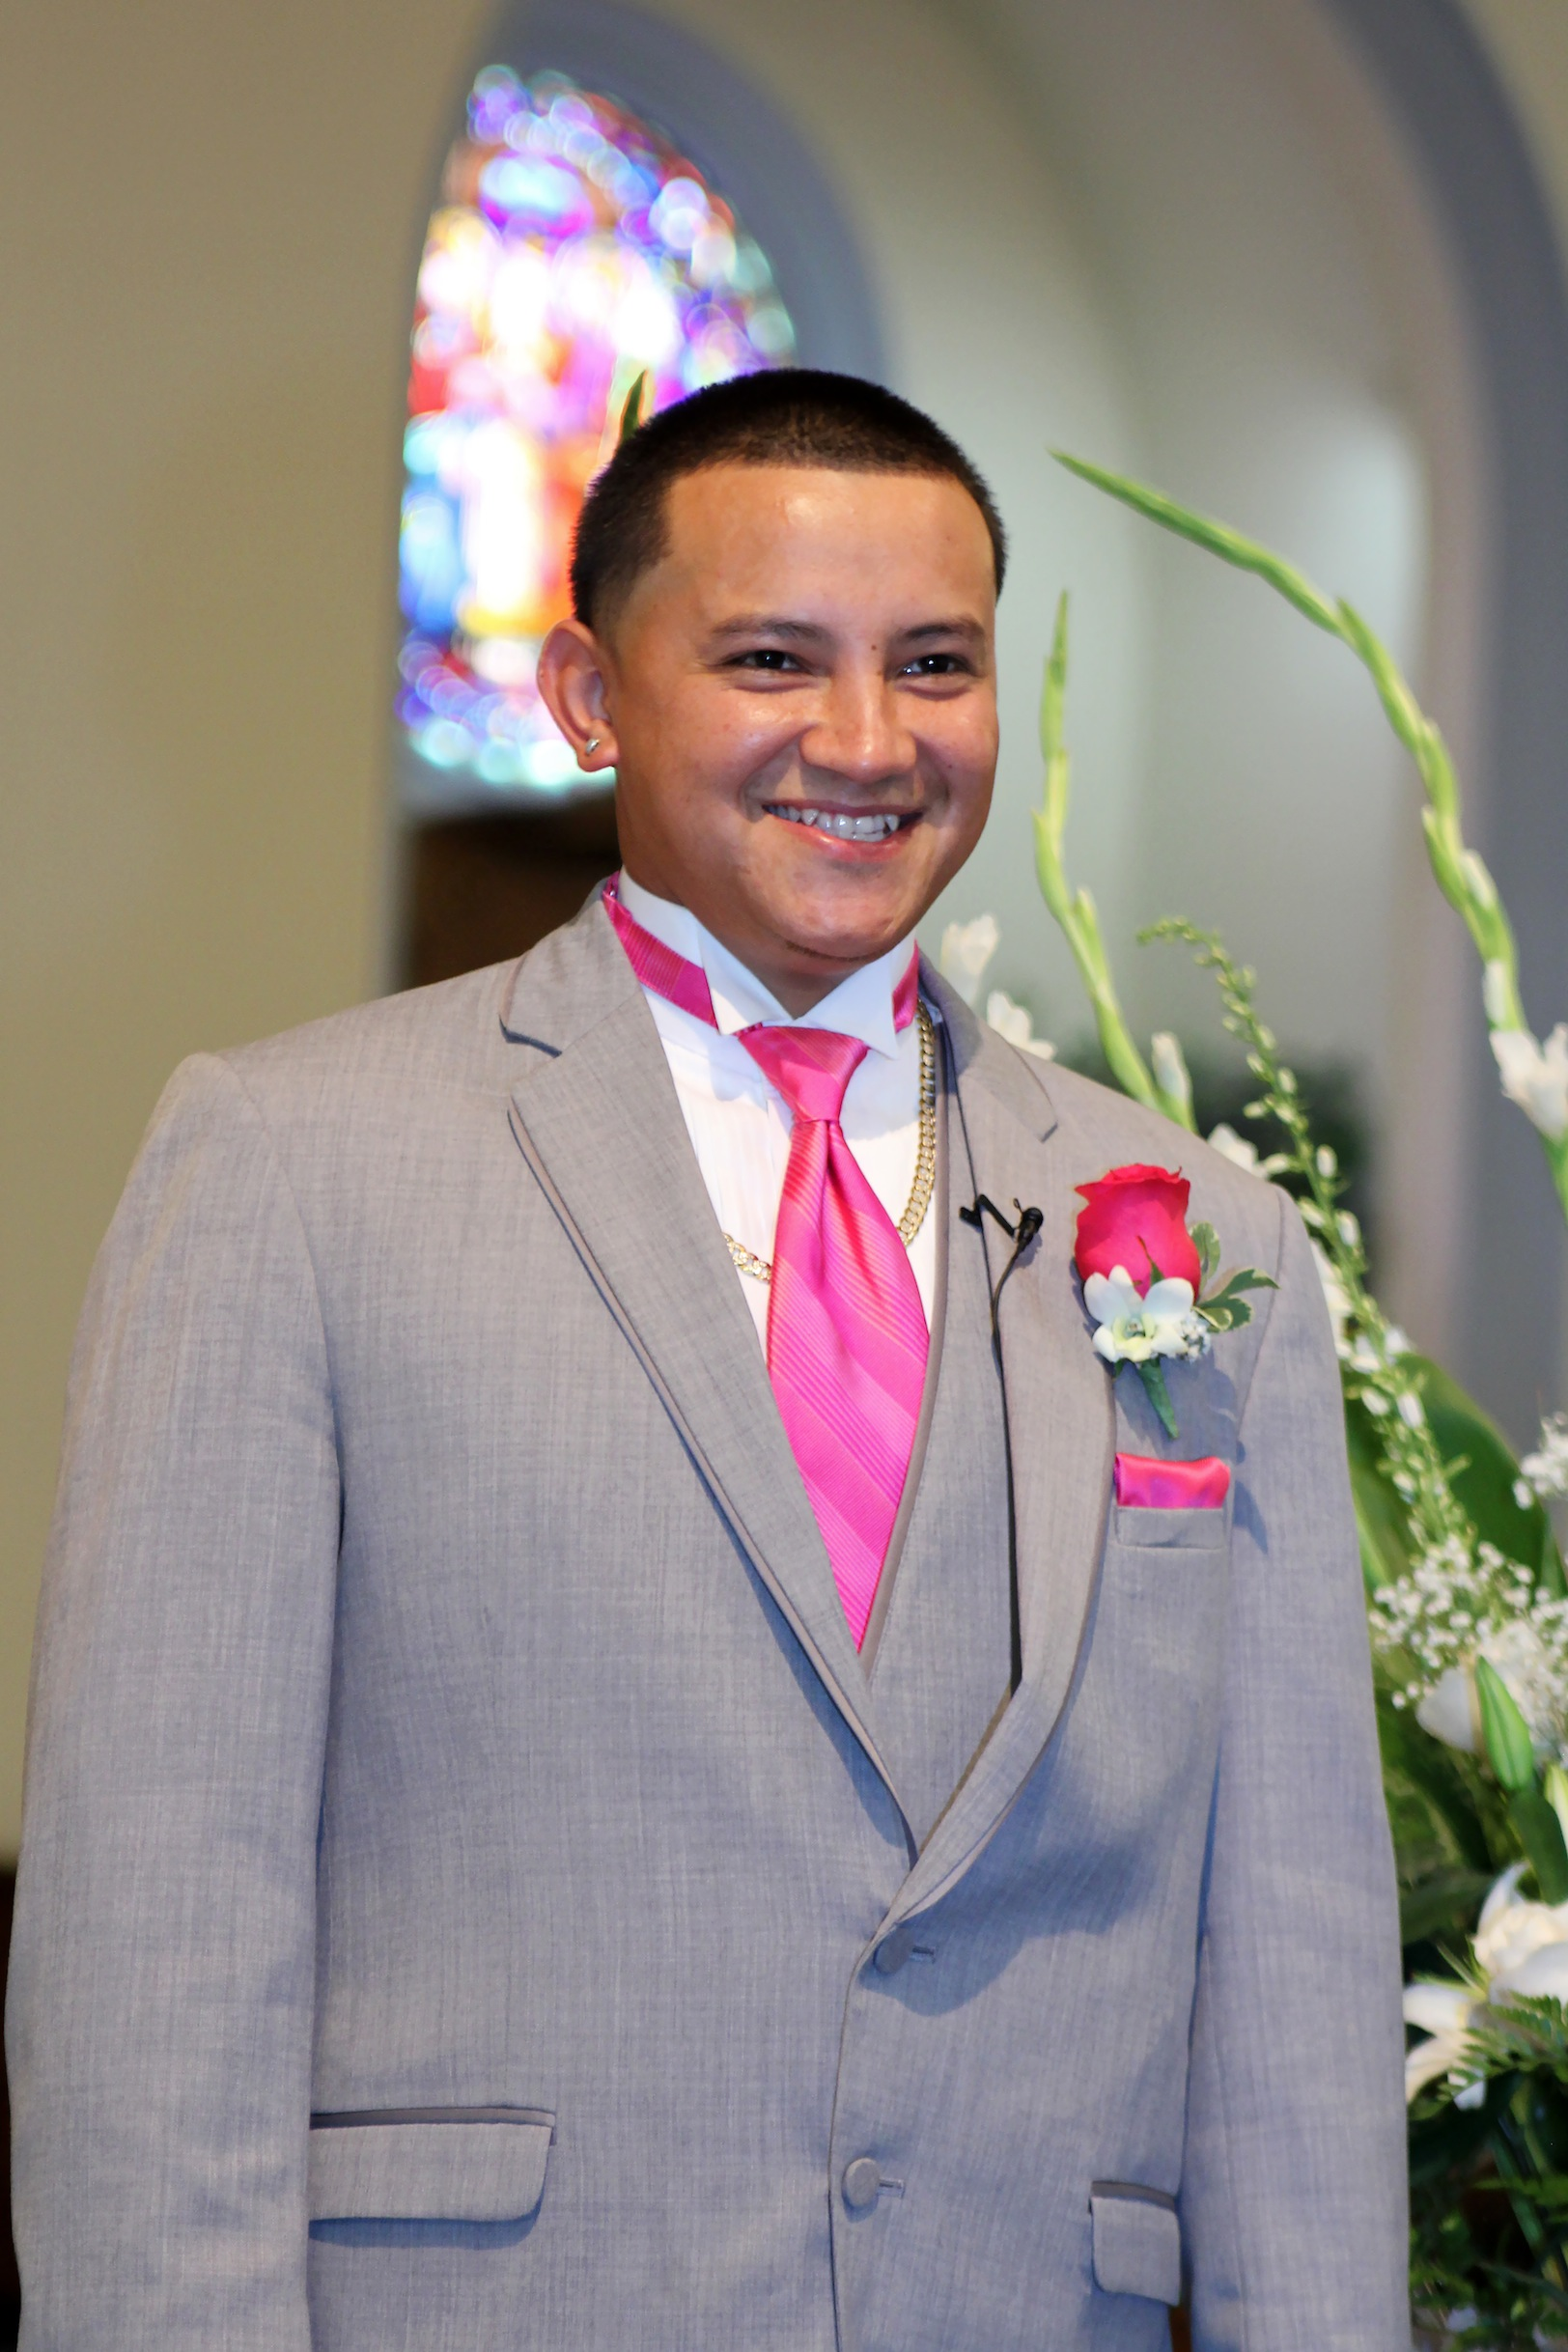 GROOM.GREY-SUIT-PINK-TIE.CEREMONY-PROCESSION.A-PICTURESQUE-MEMORY ...